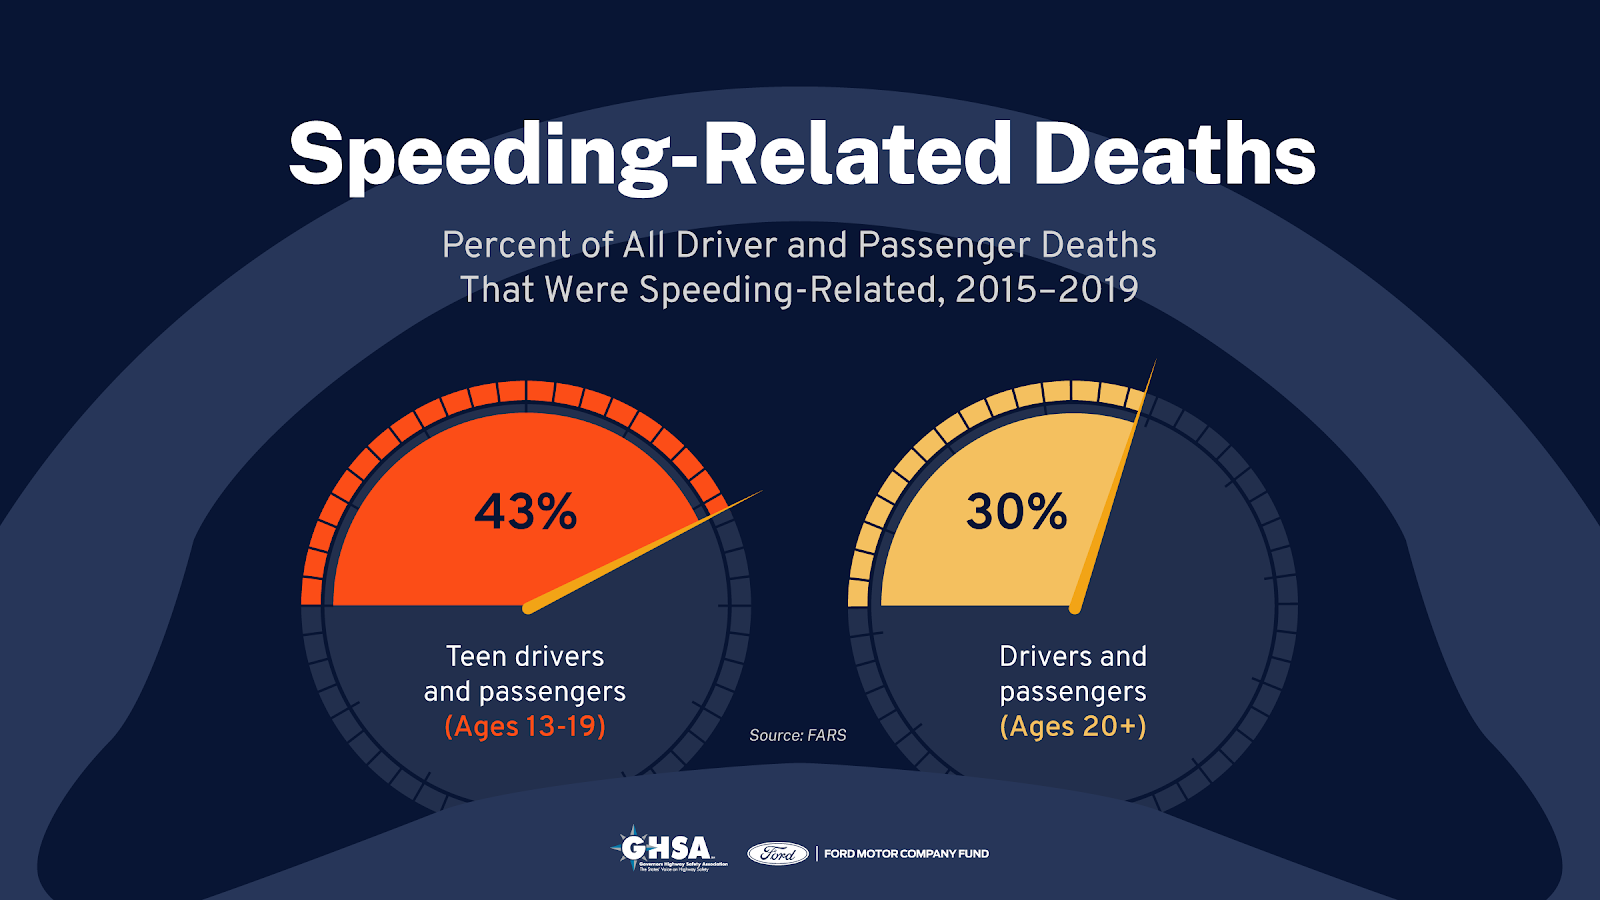 SpeedingDeaths